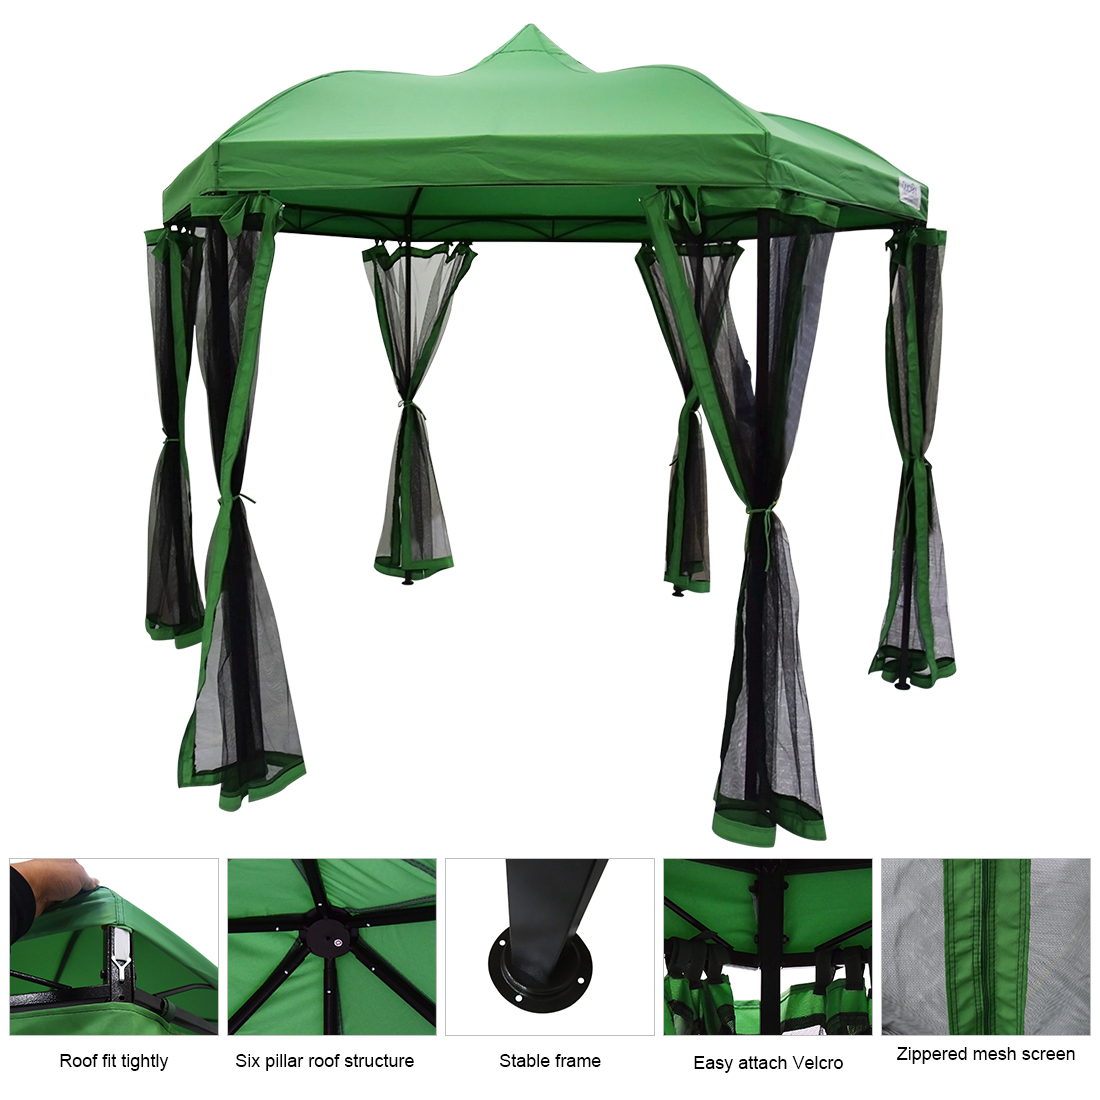 Quictent Hexagon Metal Gazebo Screened Grill Gazebo Canopy Waterproof Patio Shelter  8.7 ft